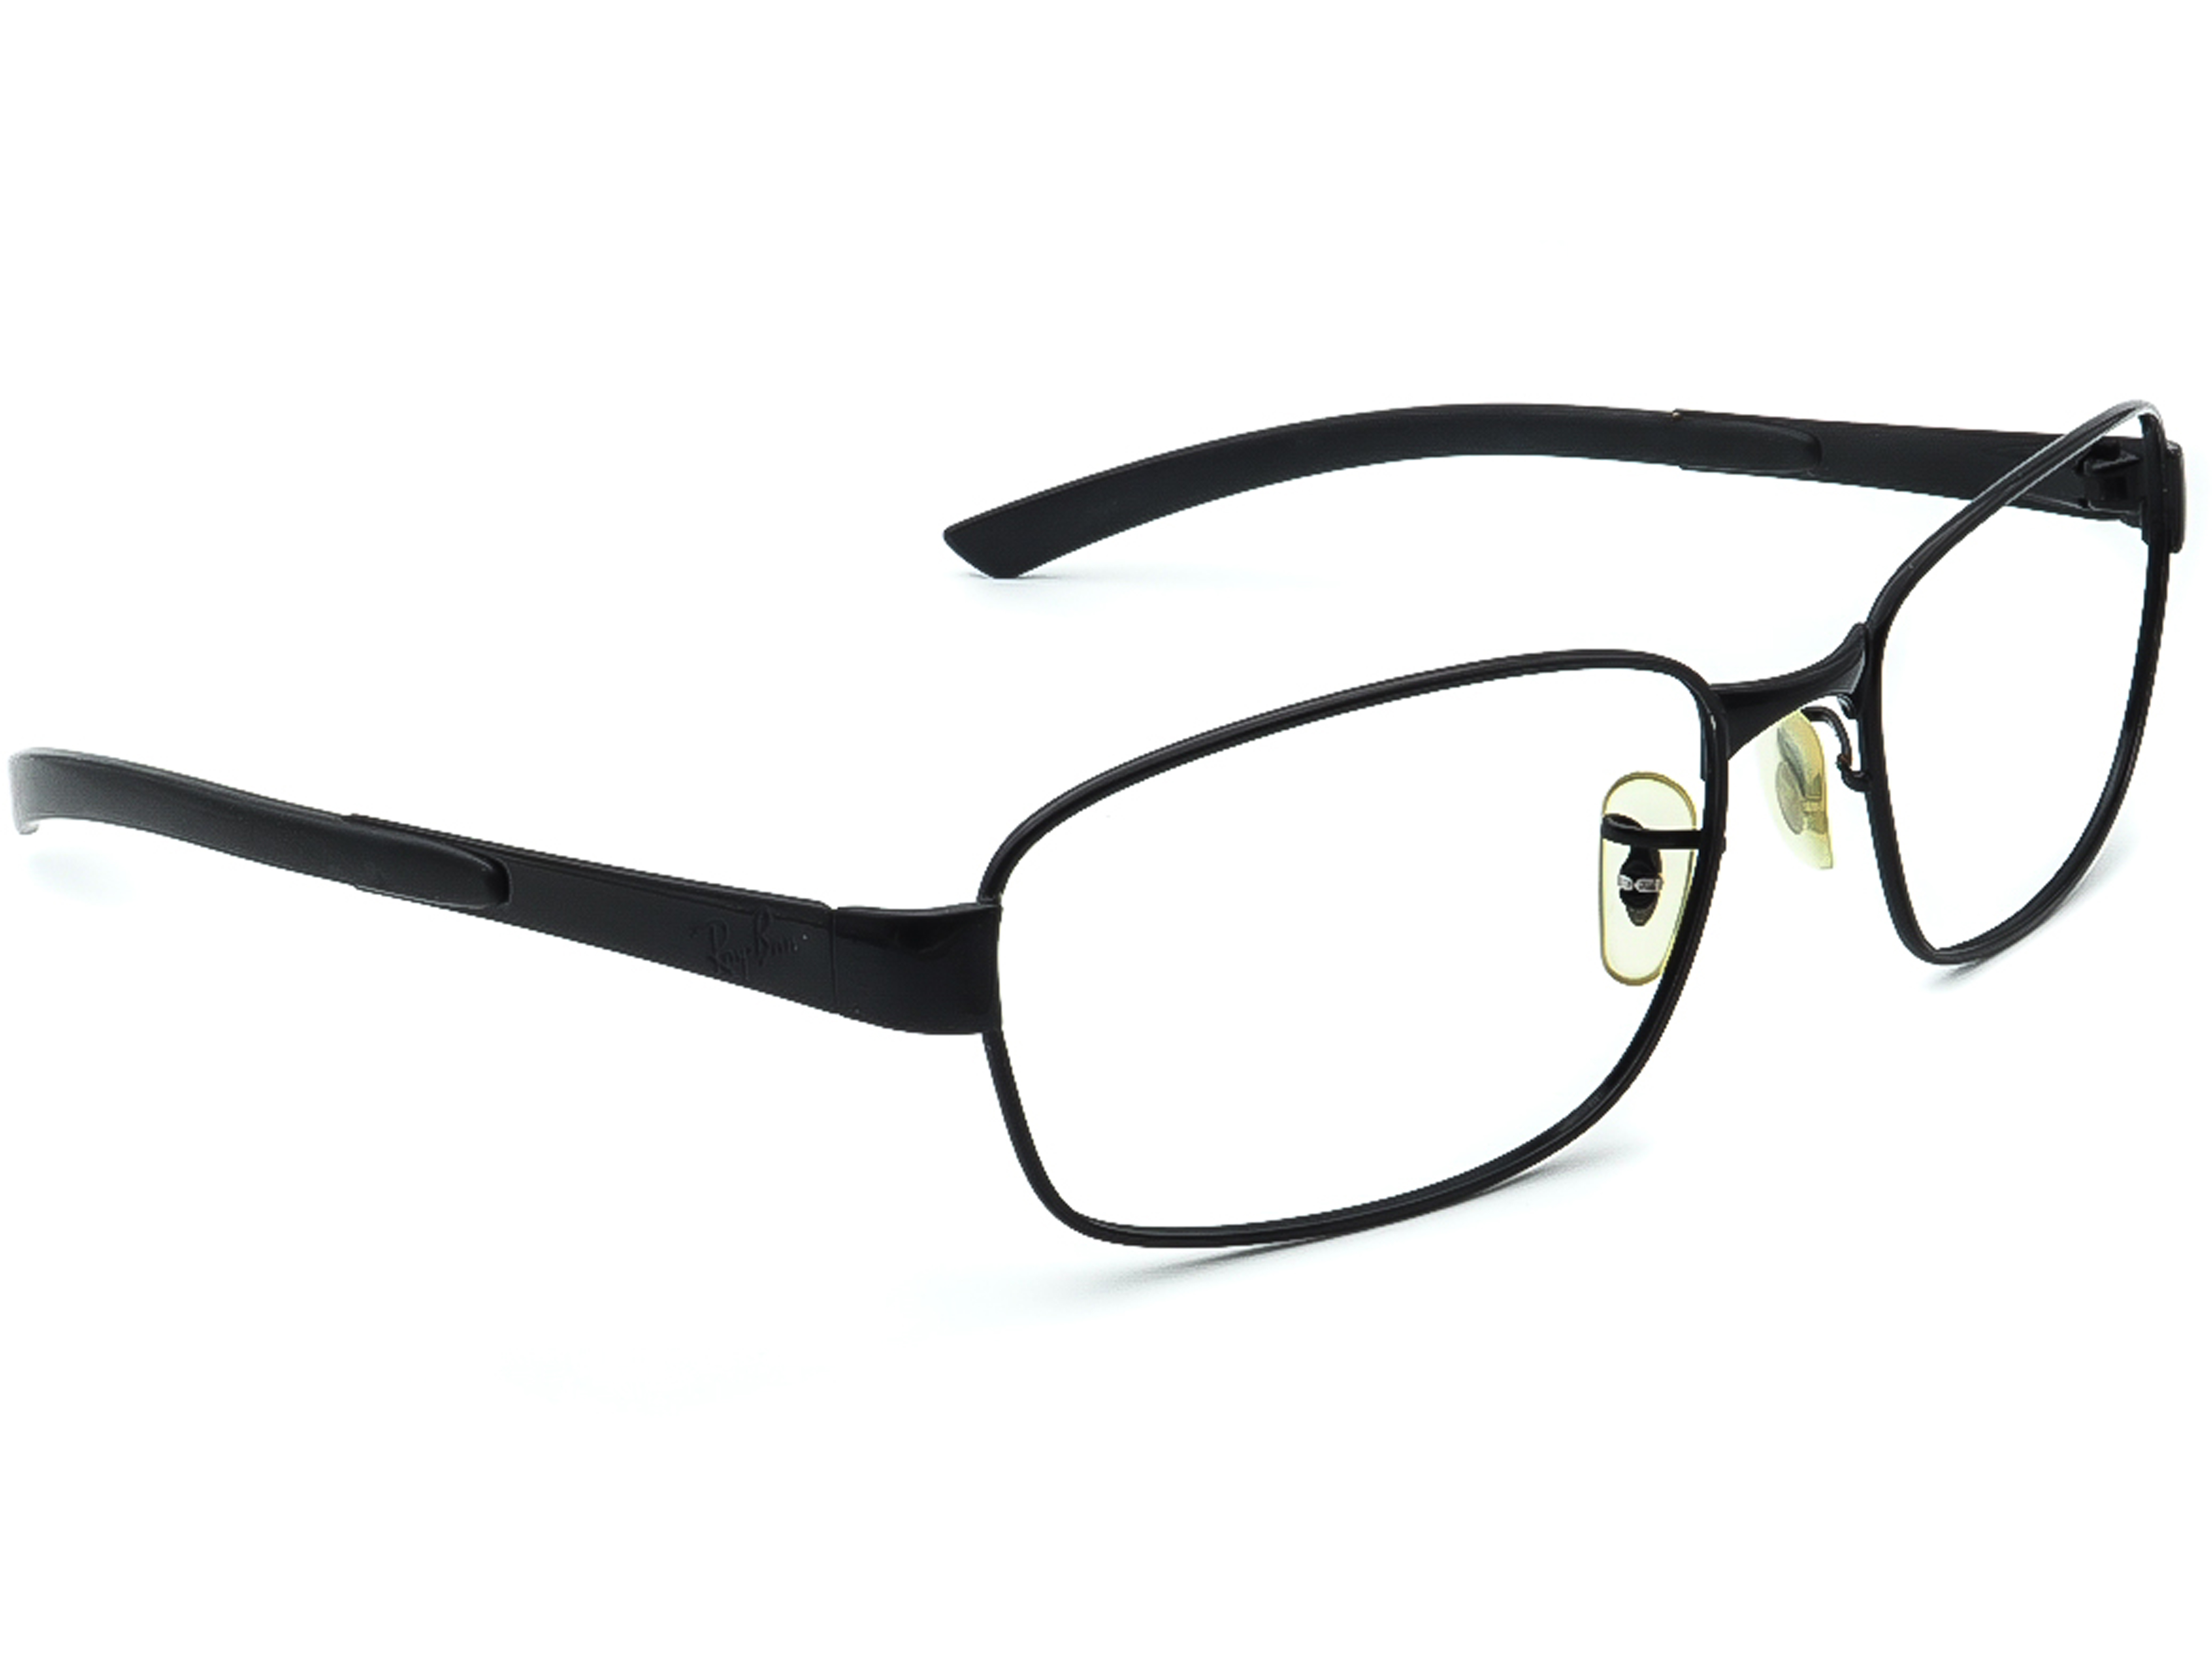 Ray Ban RB 3413 002 Sunglasses Frame Only